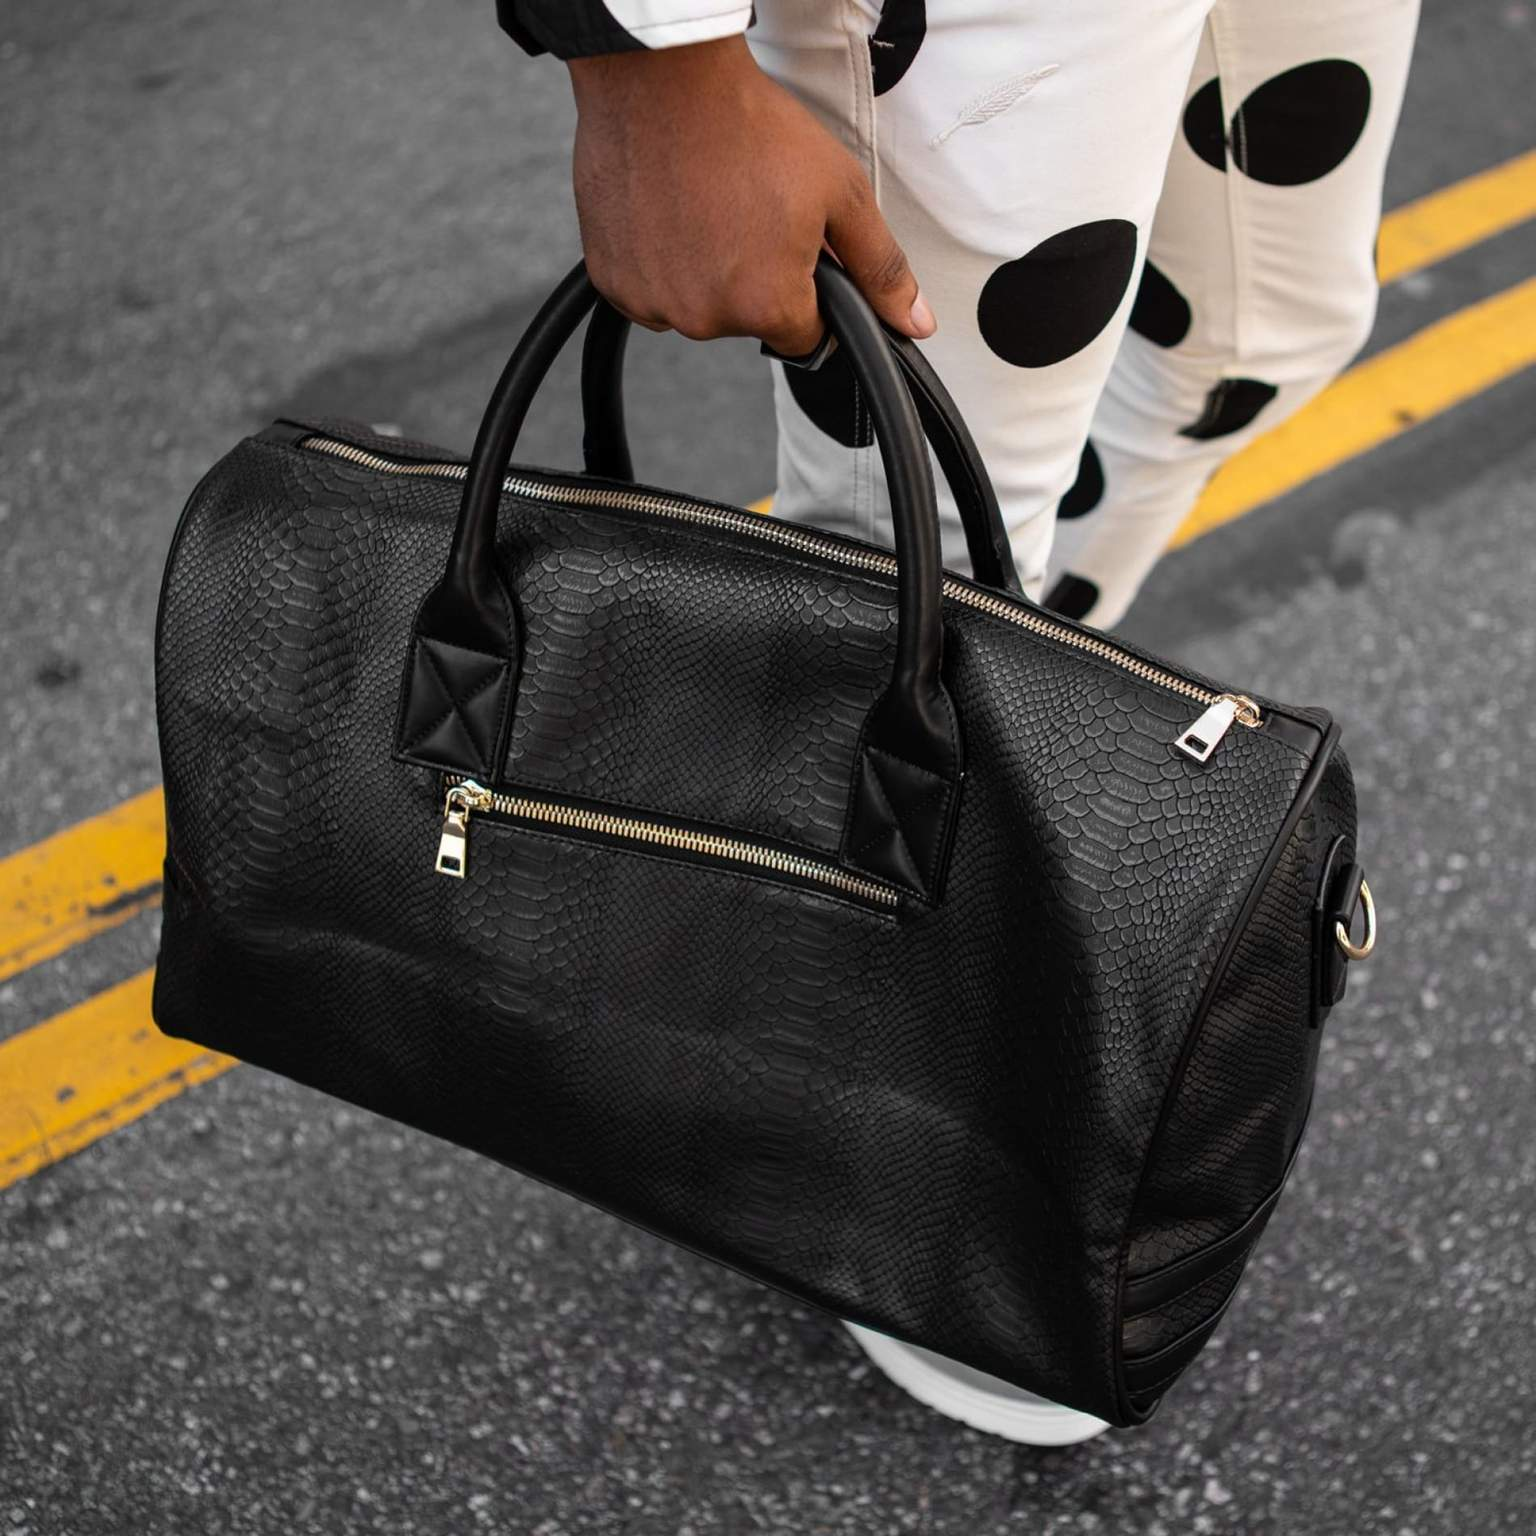 TOTE N CARRY BACK PACK & DUFFLE SETS BLACK